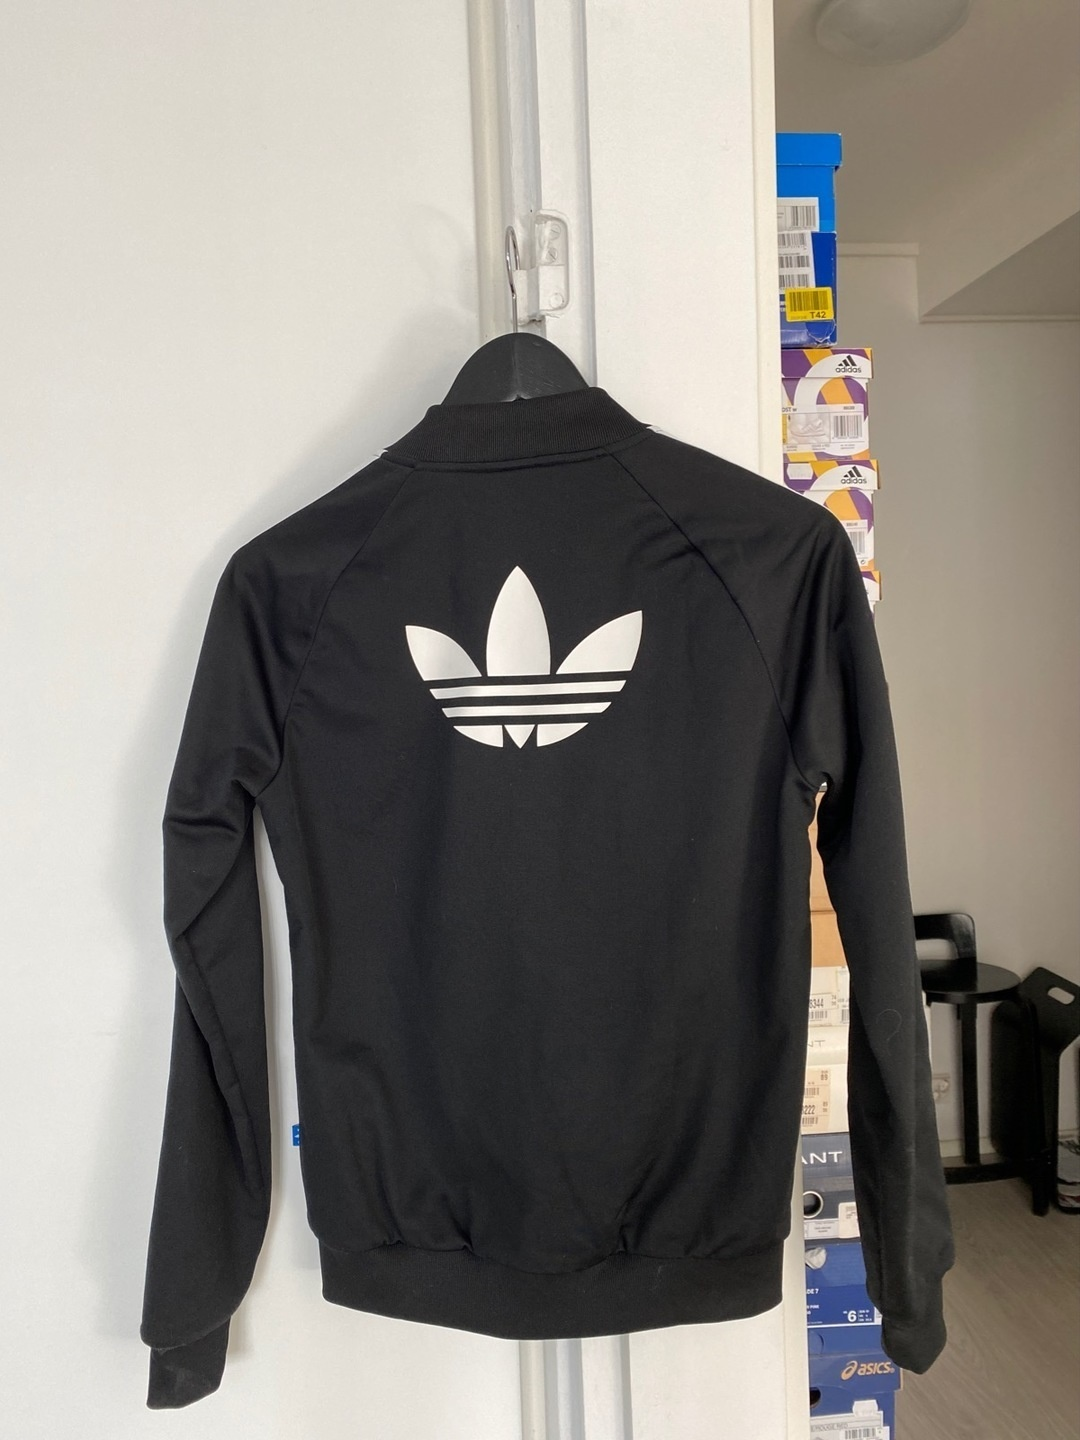 Damen kapuzenpullover & sweatshirts - ADIDAS photo 3